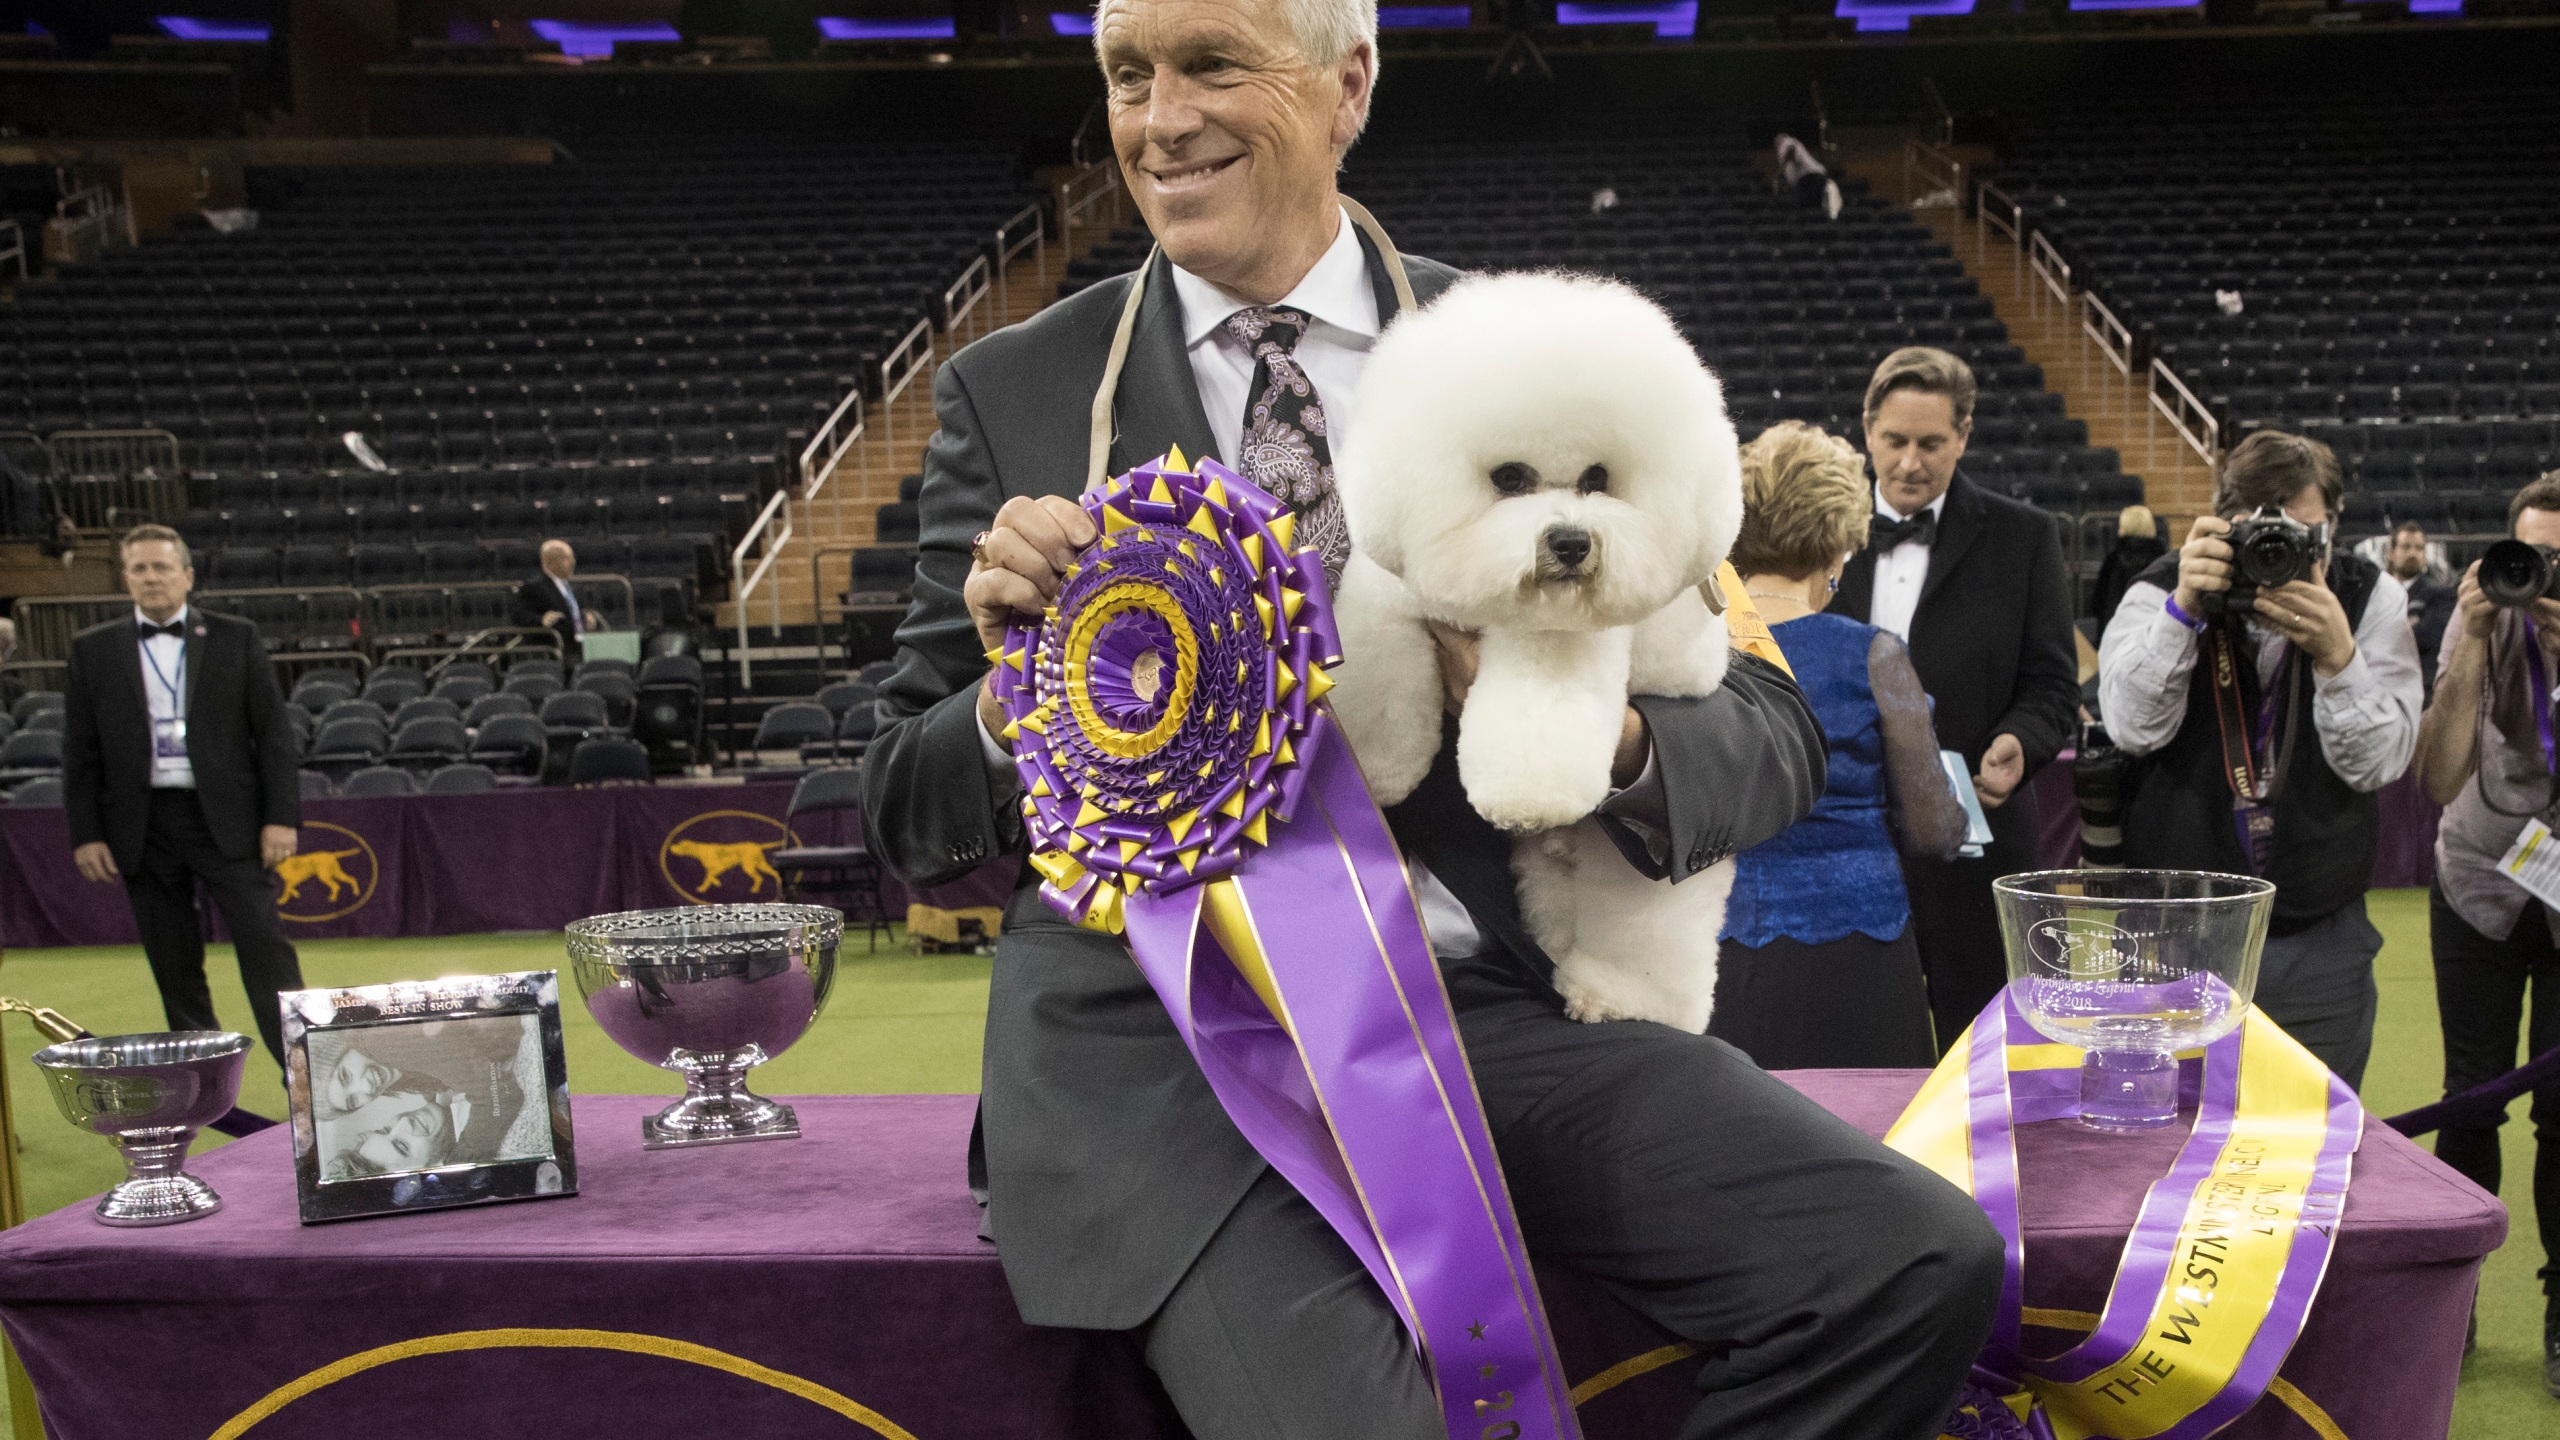 In this Feb. 13, 2018, file photo, handler Bill McFadden poses for photos with Flynn, a bichon frise, after Flynn won best in show during the 142nd Westminster Kennel Club Dog Show, Tuesday, Feb. 13, 2018, at Madison Square Garden in New York. McFadden, who has guided two Westminster winners, was rear-ended and injured while driving a van full of dogs cross-country to the show, his wife and fellow star handler, Taffe McFadden, said Saturday, June 12, 2021. (AP Photo/Mary Altaffer, File)